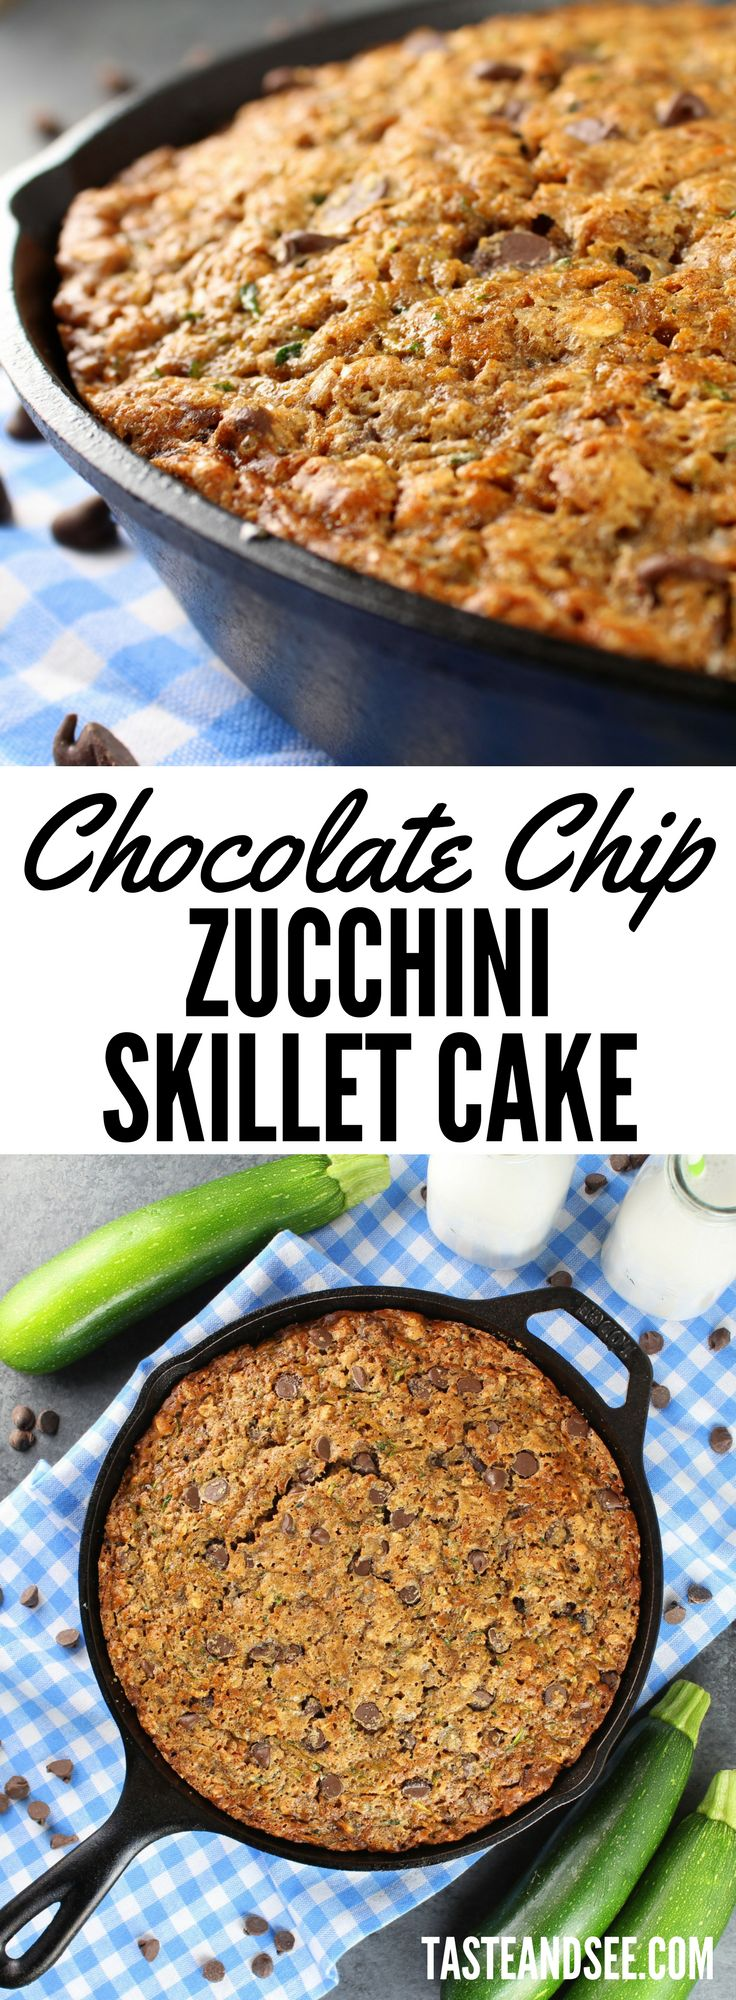 Chocolate Chip Zucchini Skillet Cake - Full of oats, chocolate chips, cinnamon, ginger and of course shredded zucchini - creating the most delicious and moist zucchini bread ever!  https://tasteandsee.com